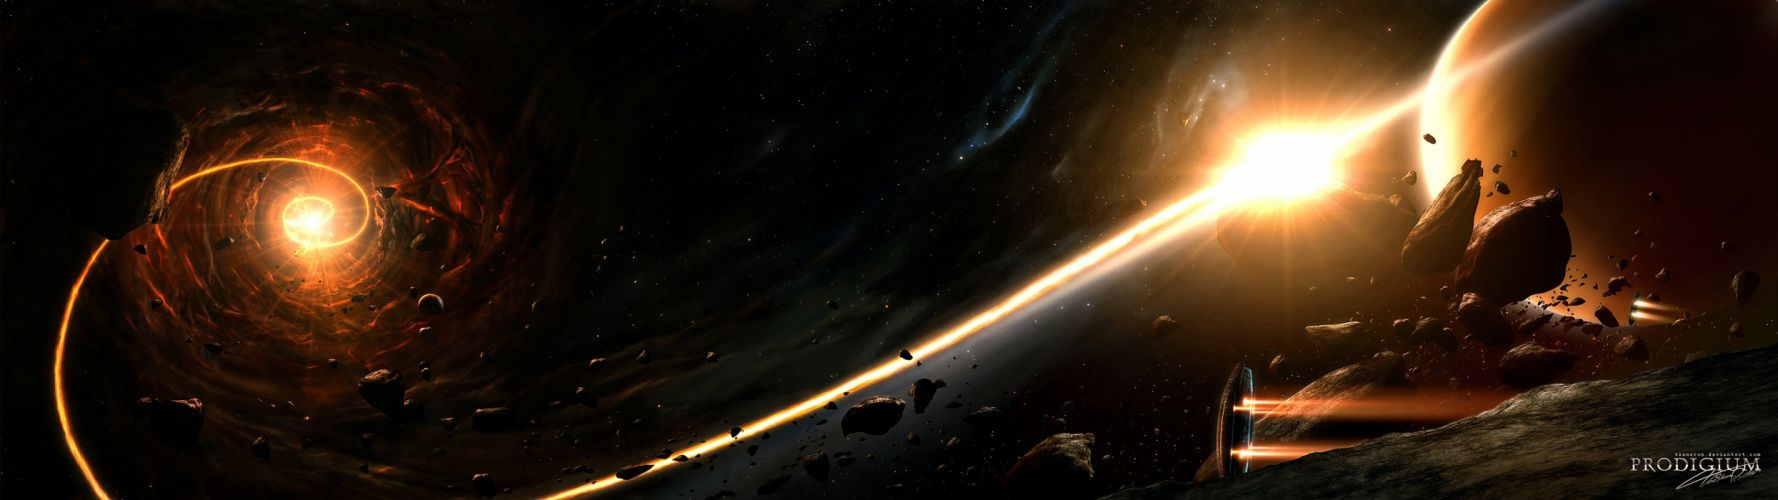 sunrise outer space planets wallpaper